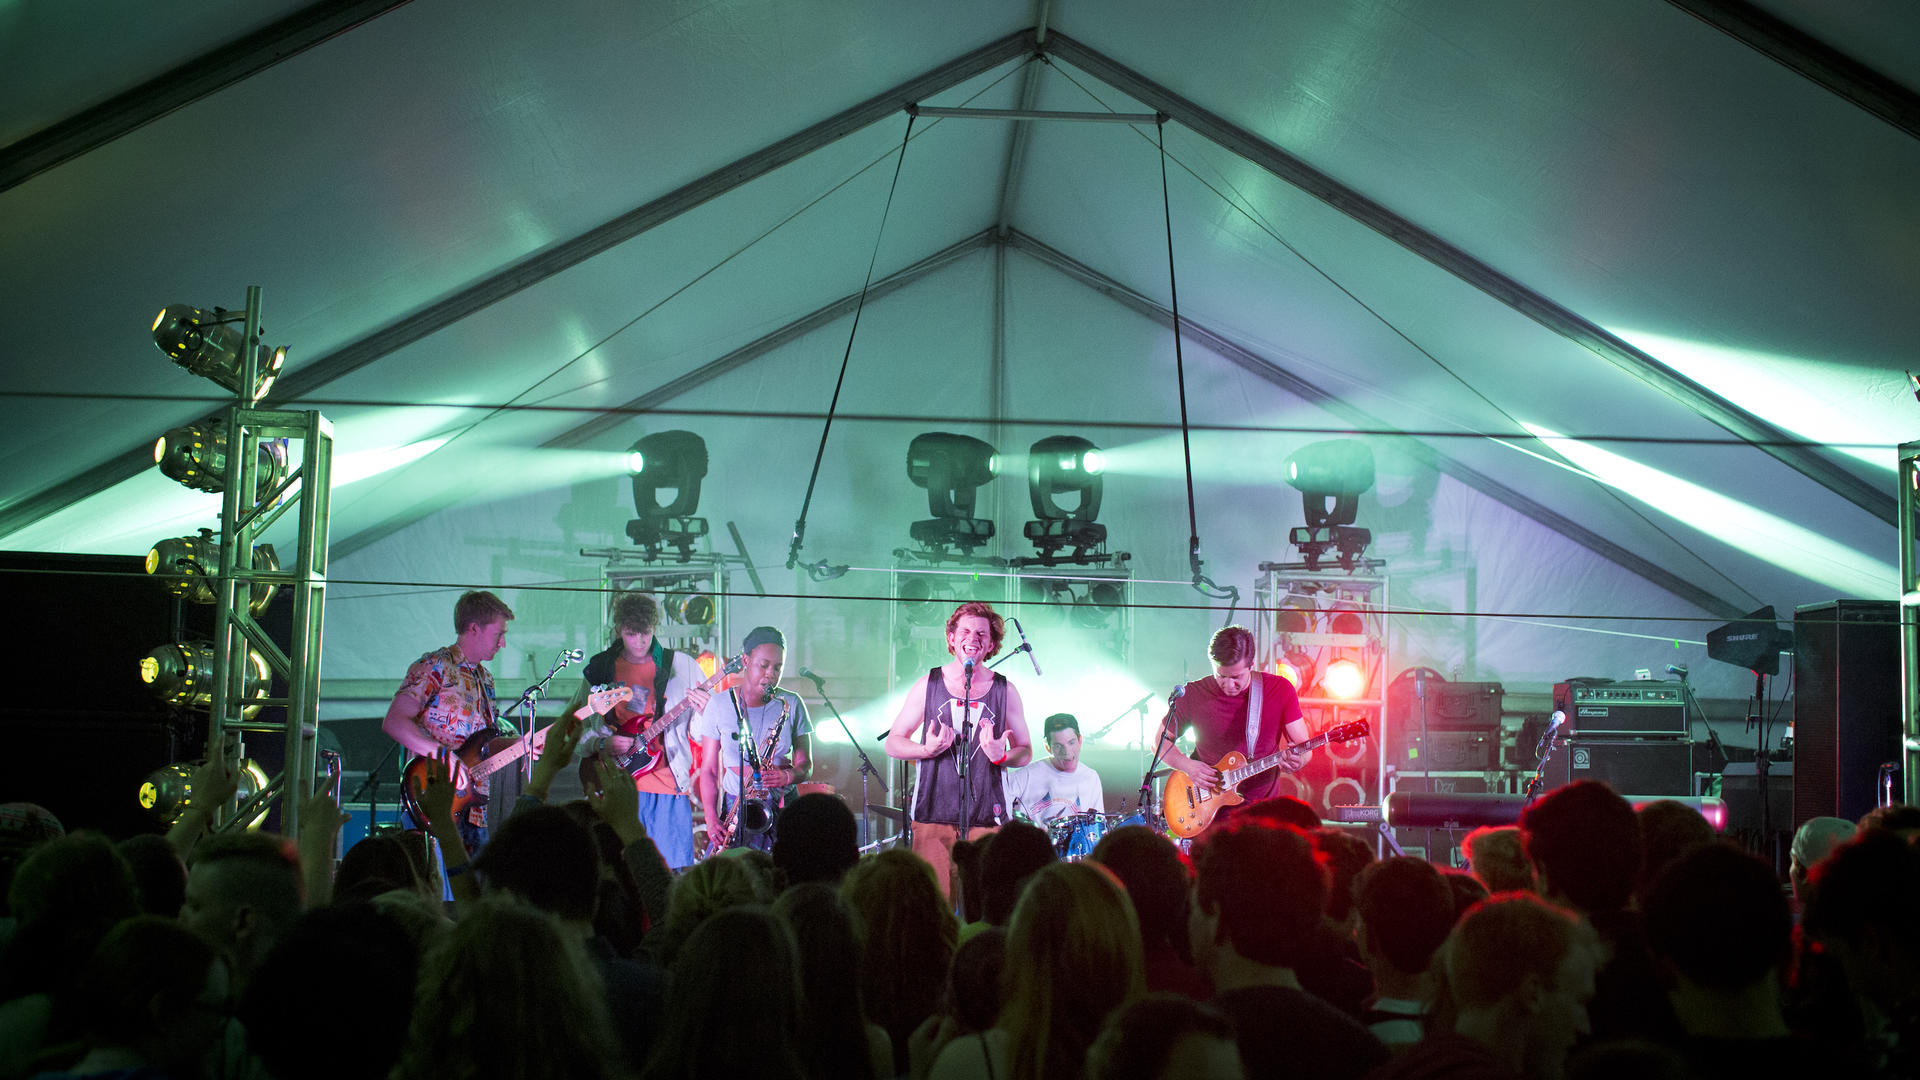 a band performs under a tent